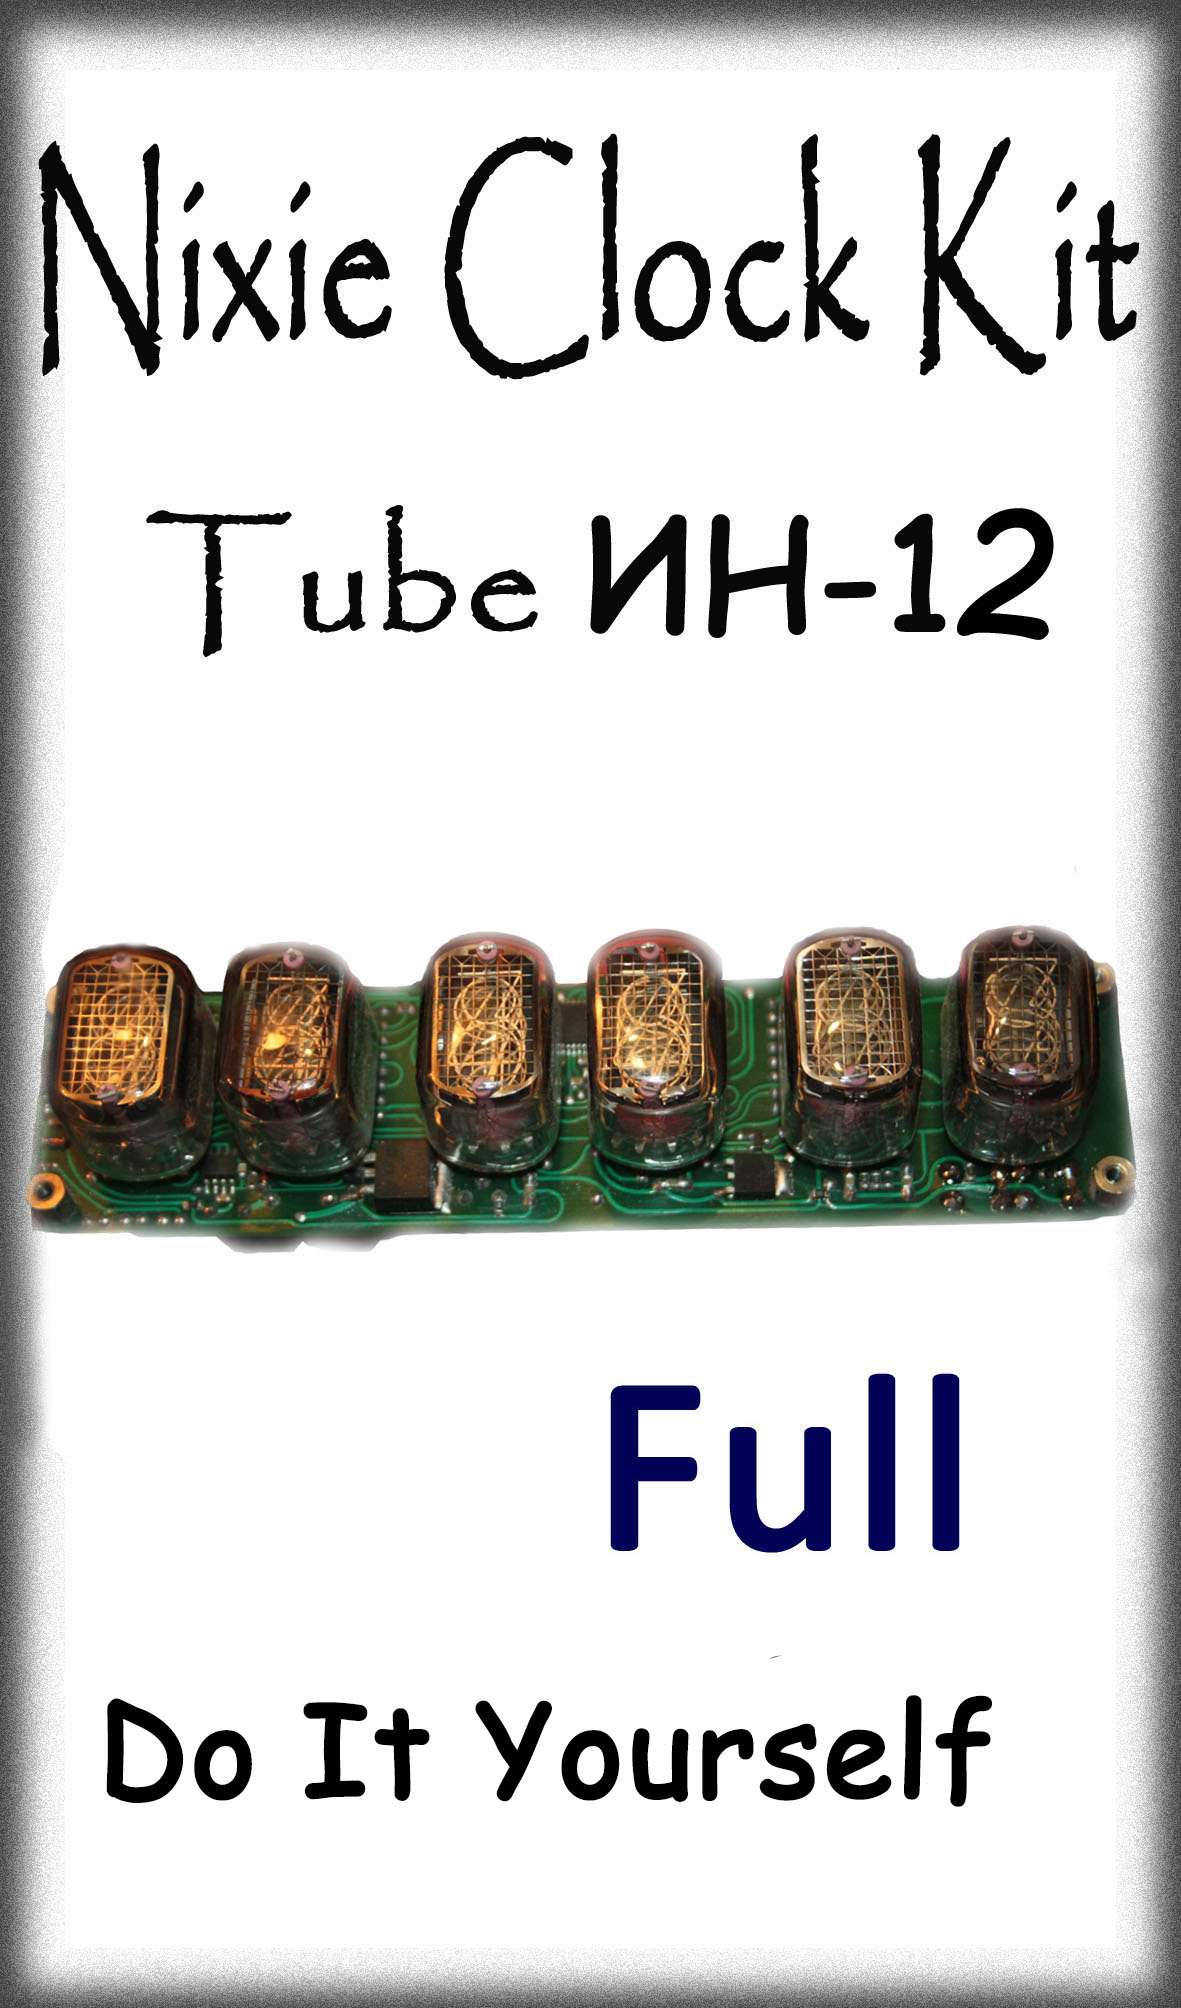 Nixie Clock IN-12 Full